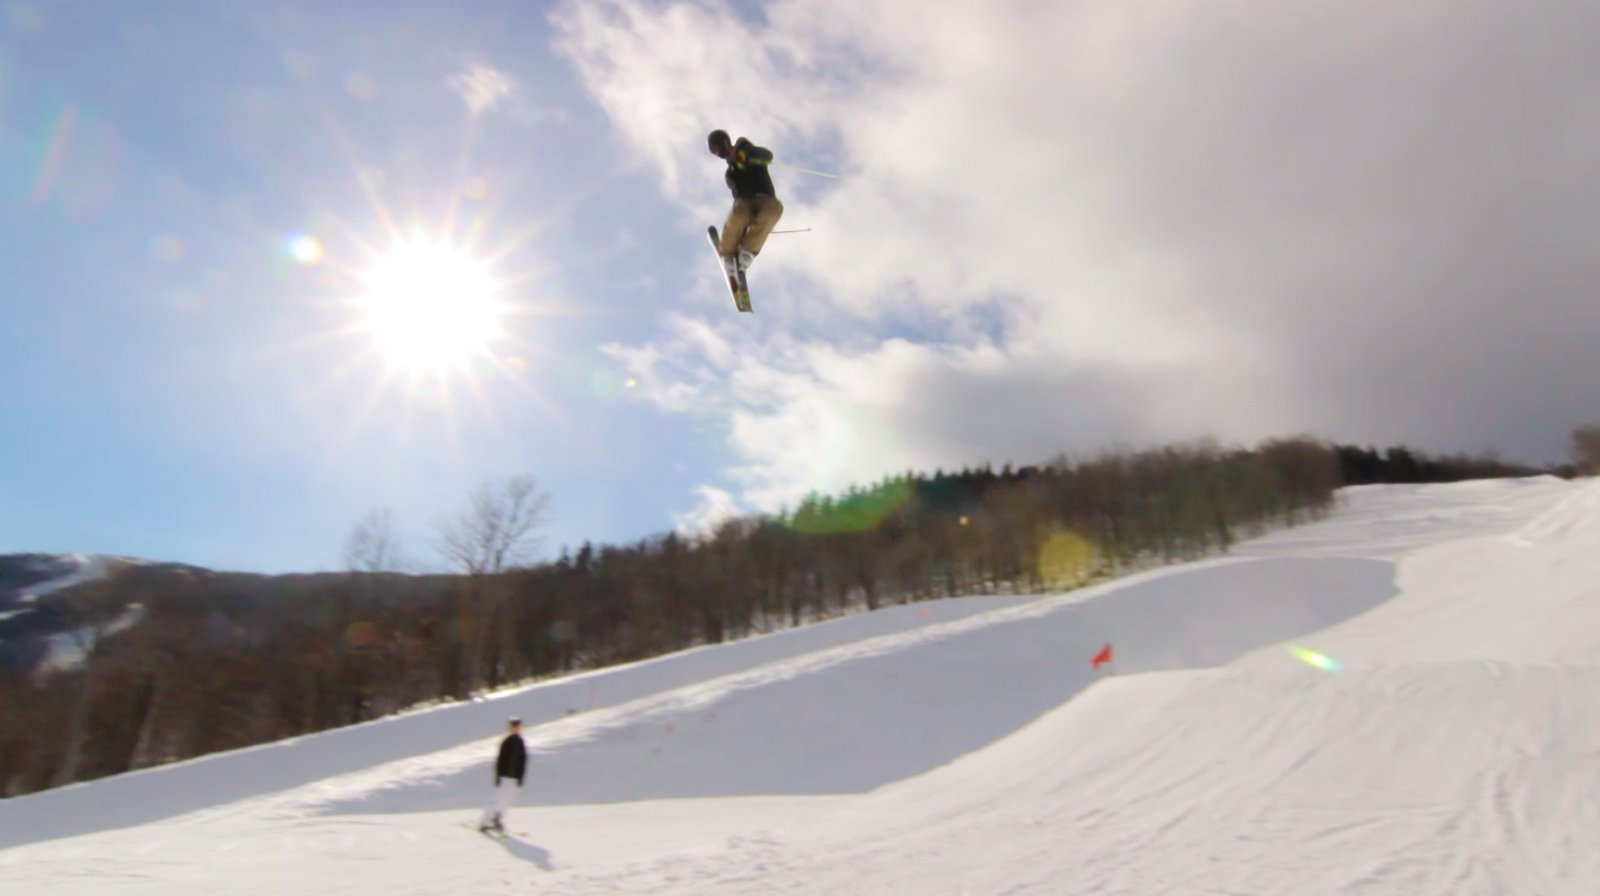 Going Big at Sunday River